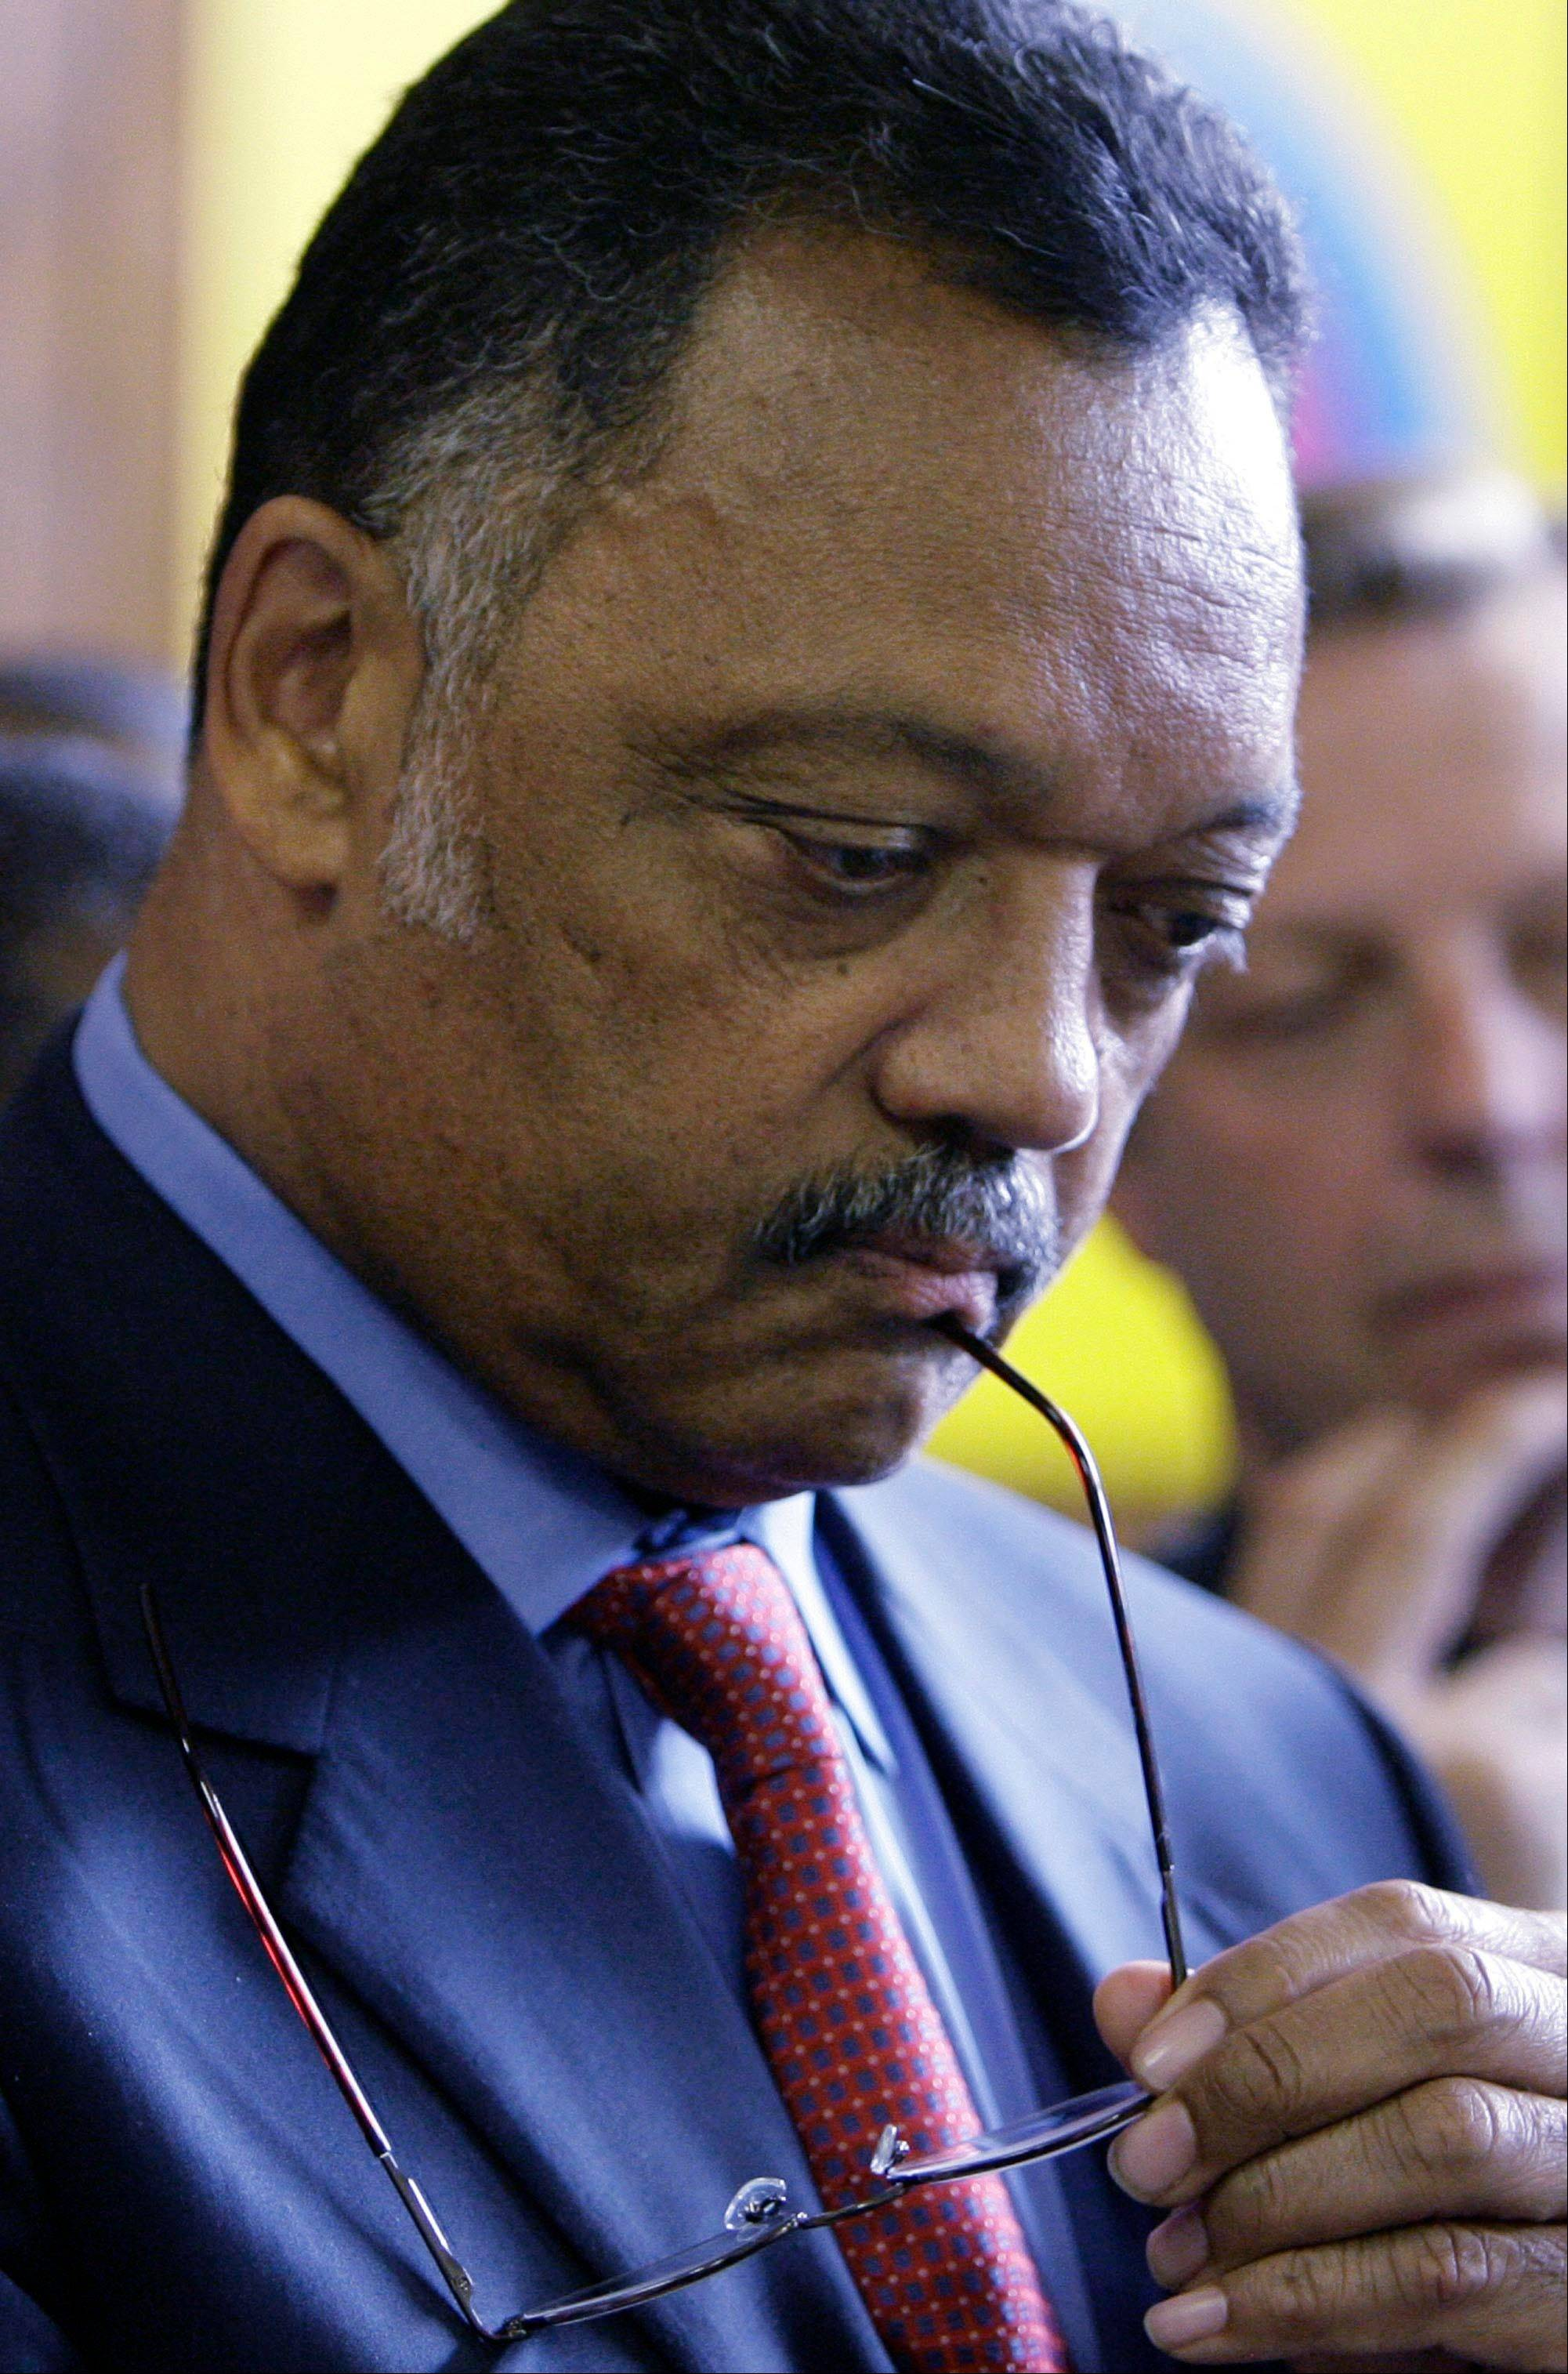 The Rev. Jesse Jackson listens to fellow speakers during a 2008 news conference at Rainbow PUSH headquarters in Chicago.